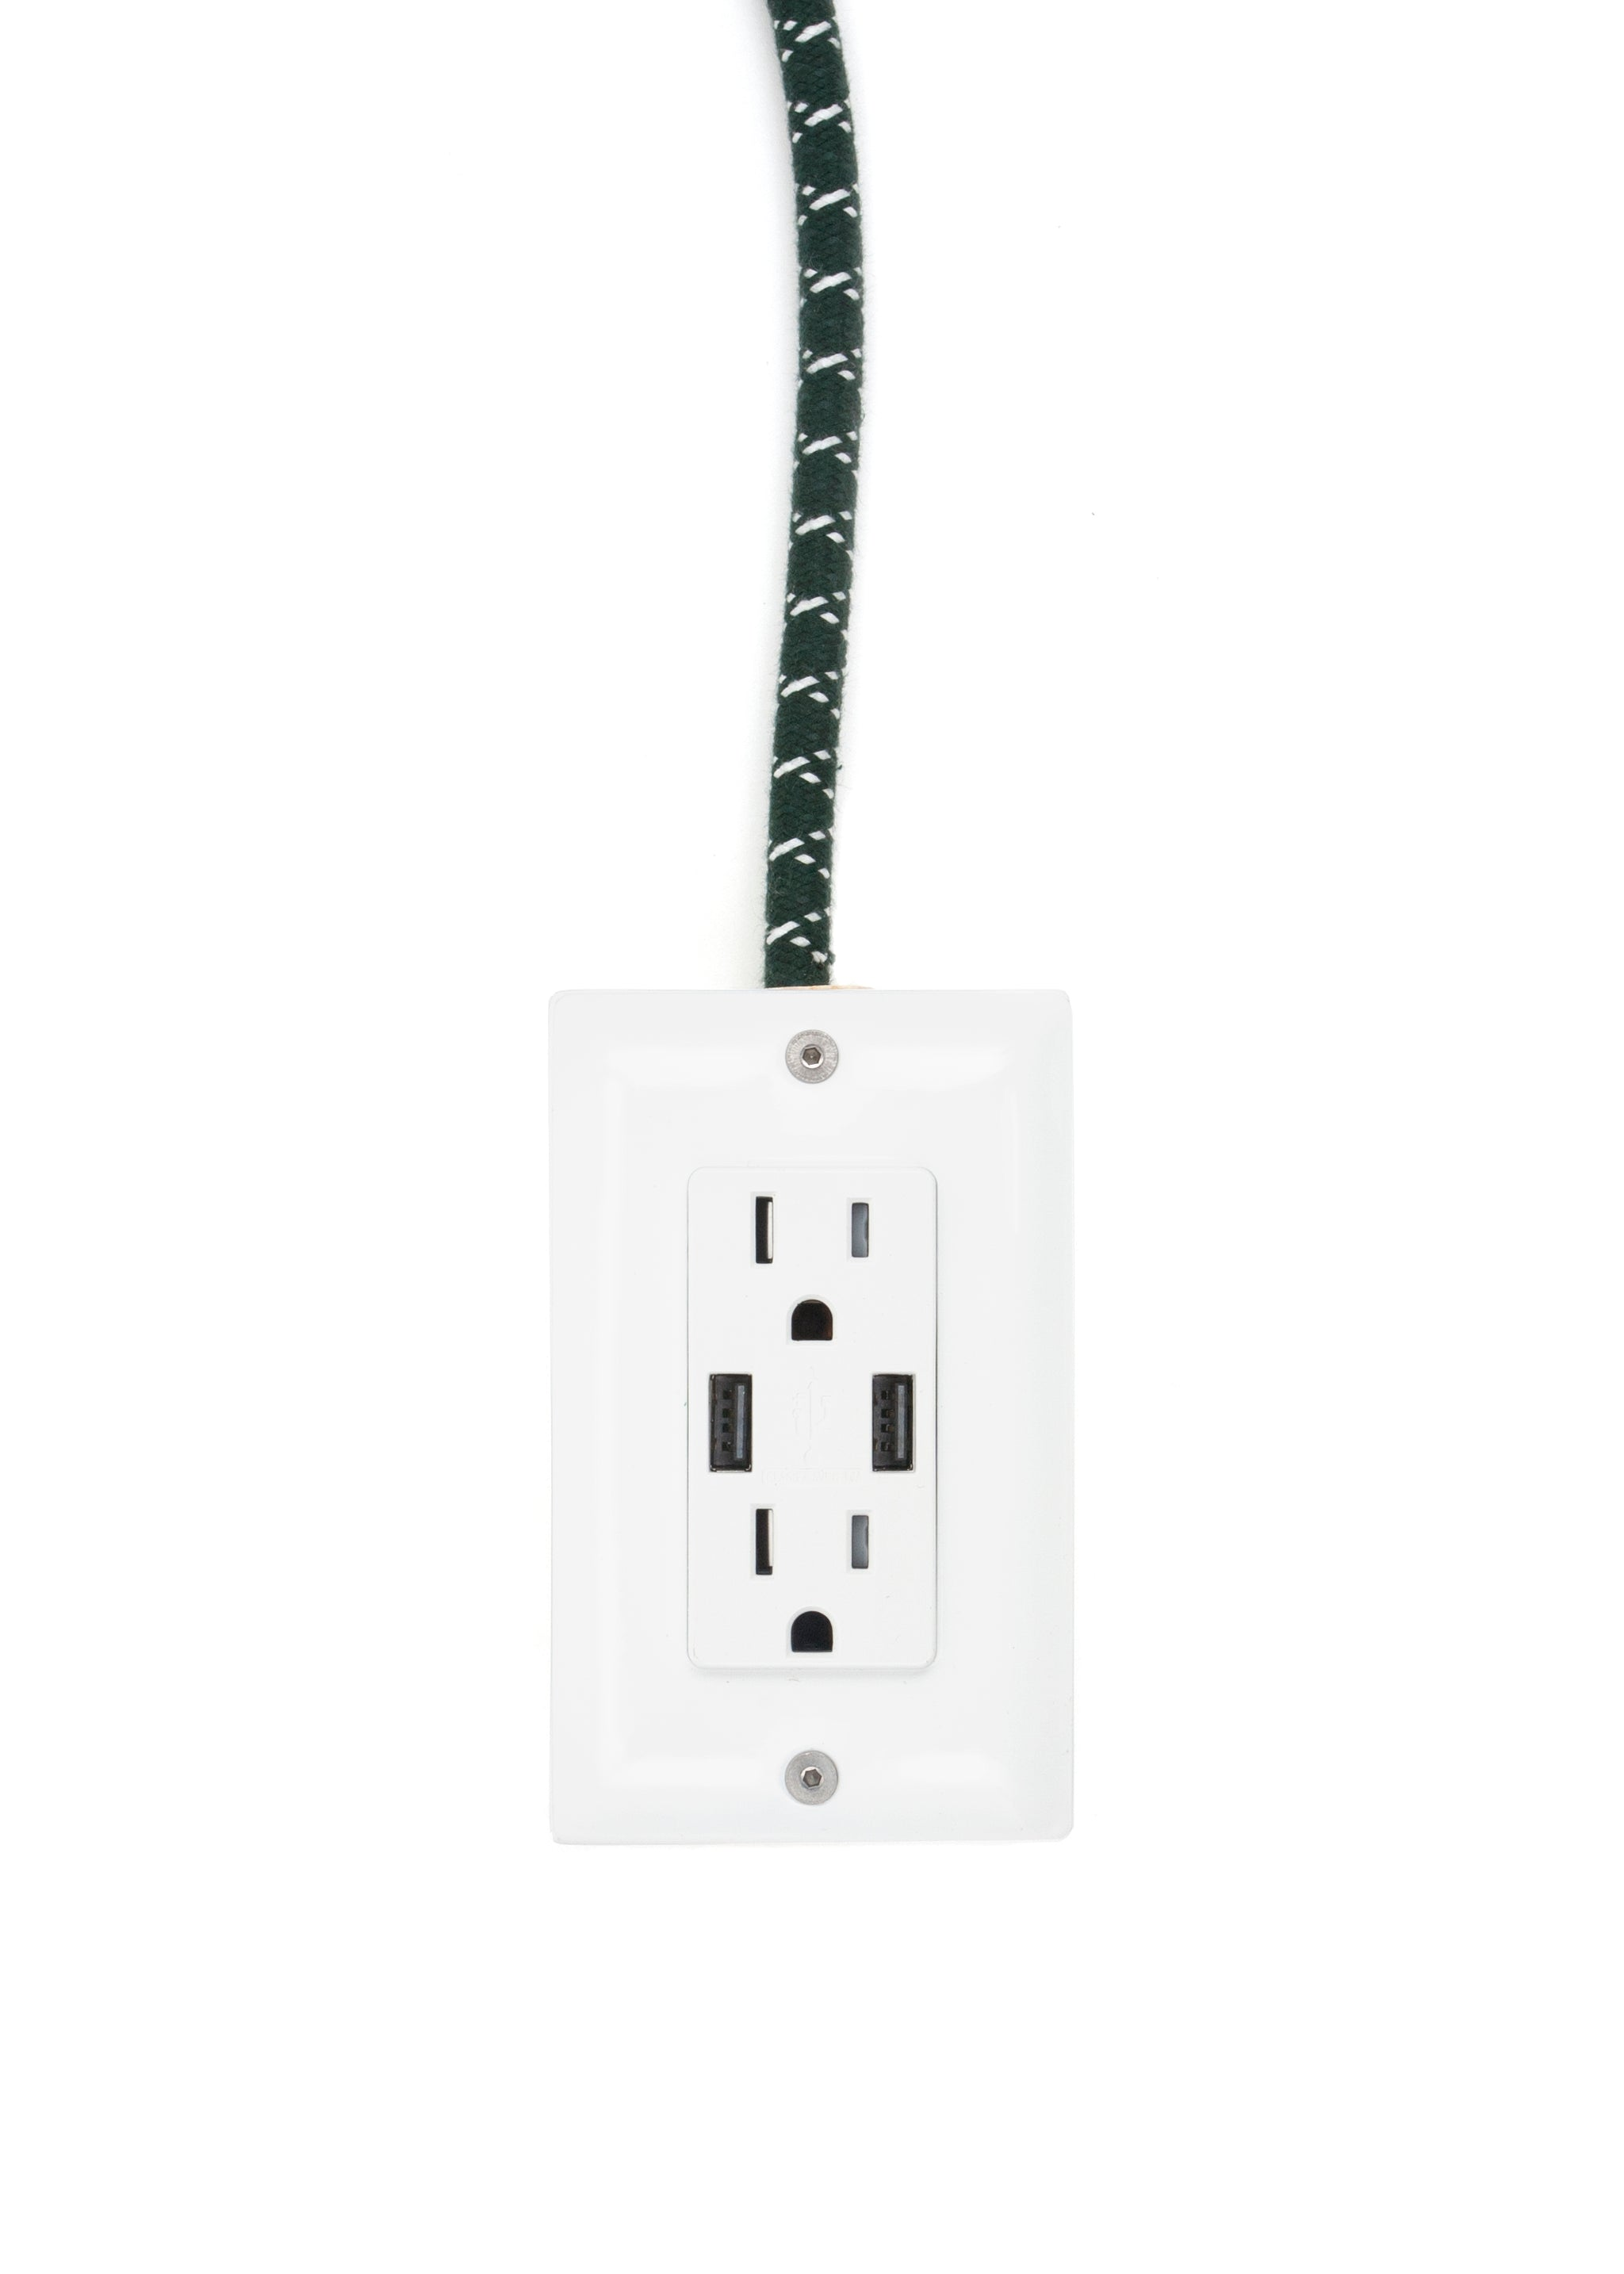 The First Smart Chip Extension Cord - 12' Extō Dual-USB, Dual-Outlet - Stuart Green